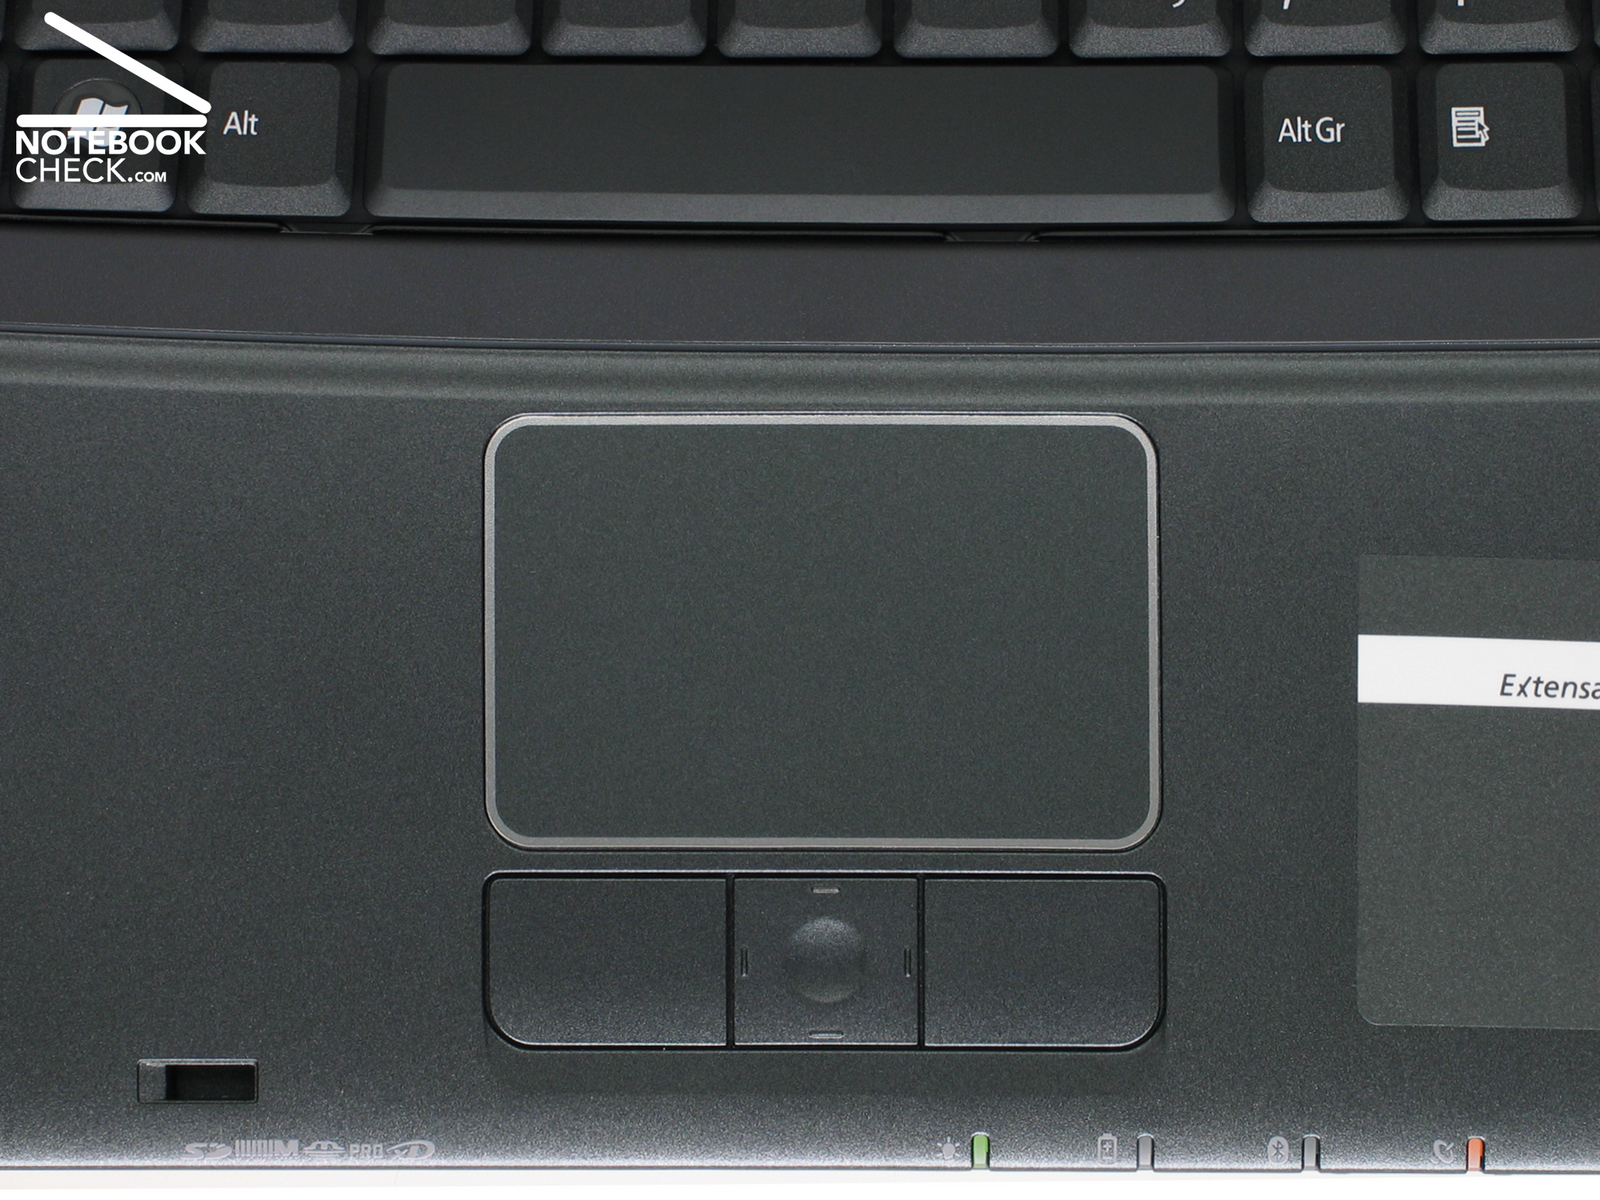 DRIVER FOR ACER EXTENSA 5220 NOTEBOOK BROADCOM WLAN